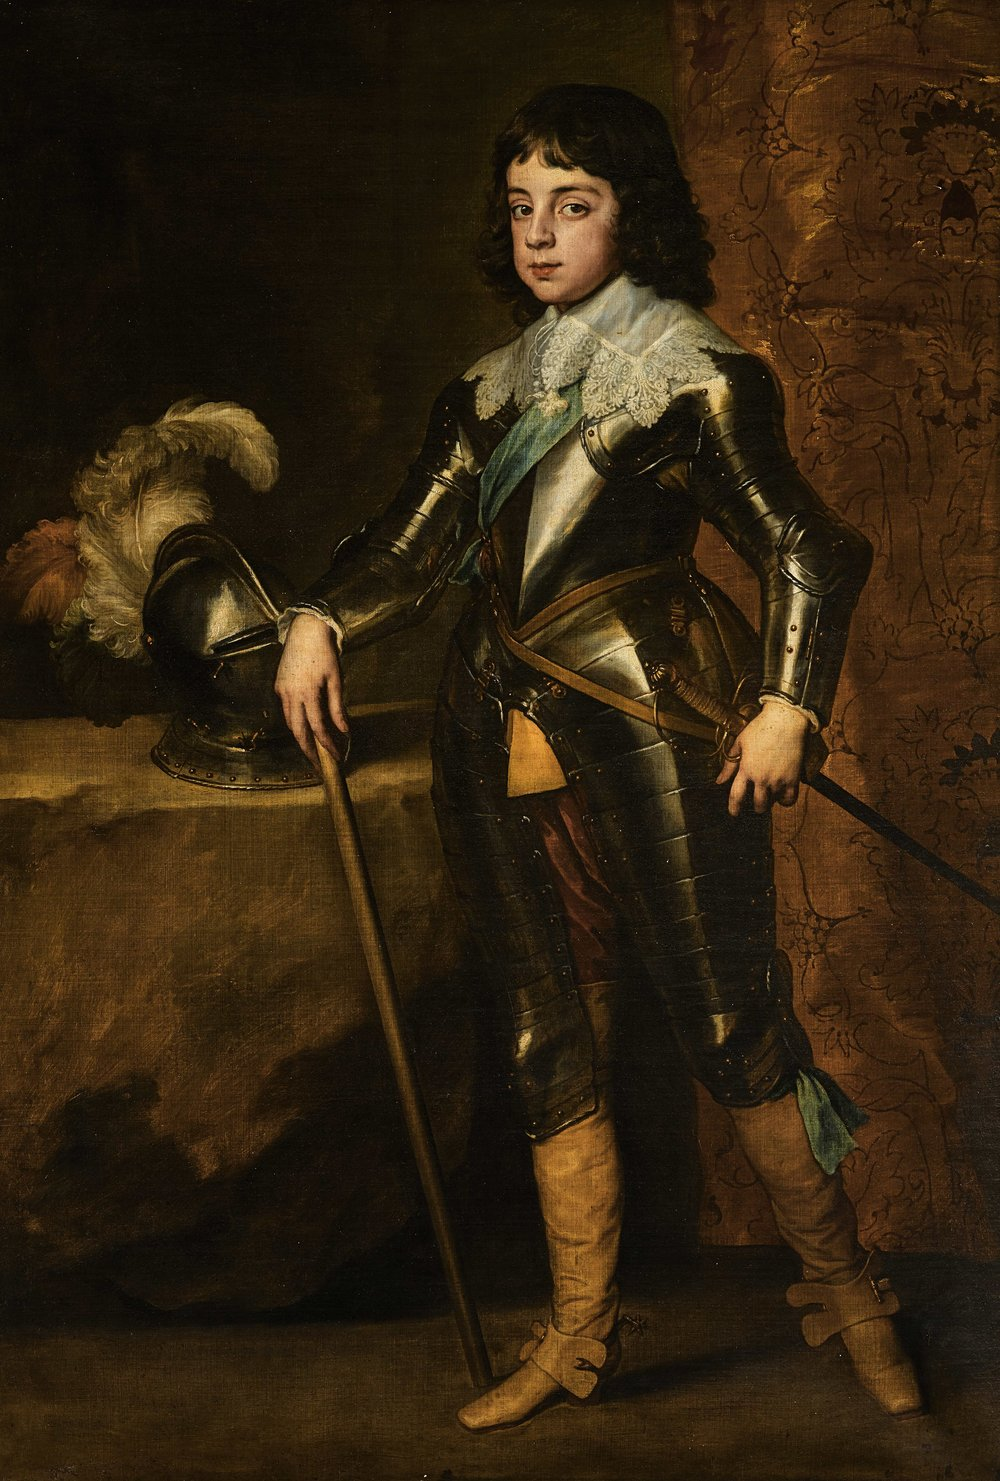 Van Dyck Portrait of Charles II when Prince of Wales: £2-3million